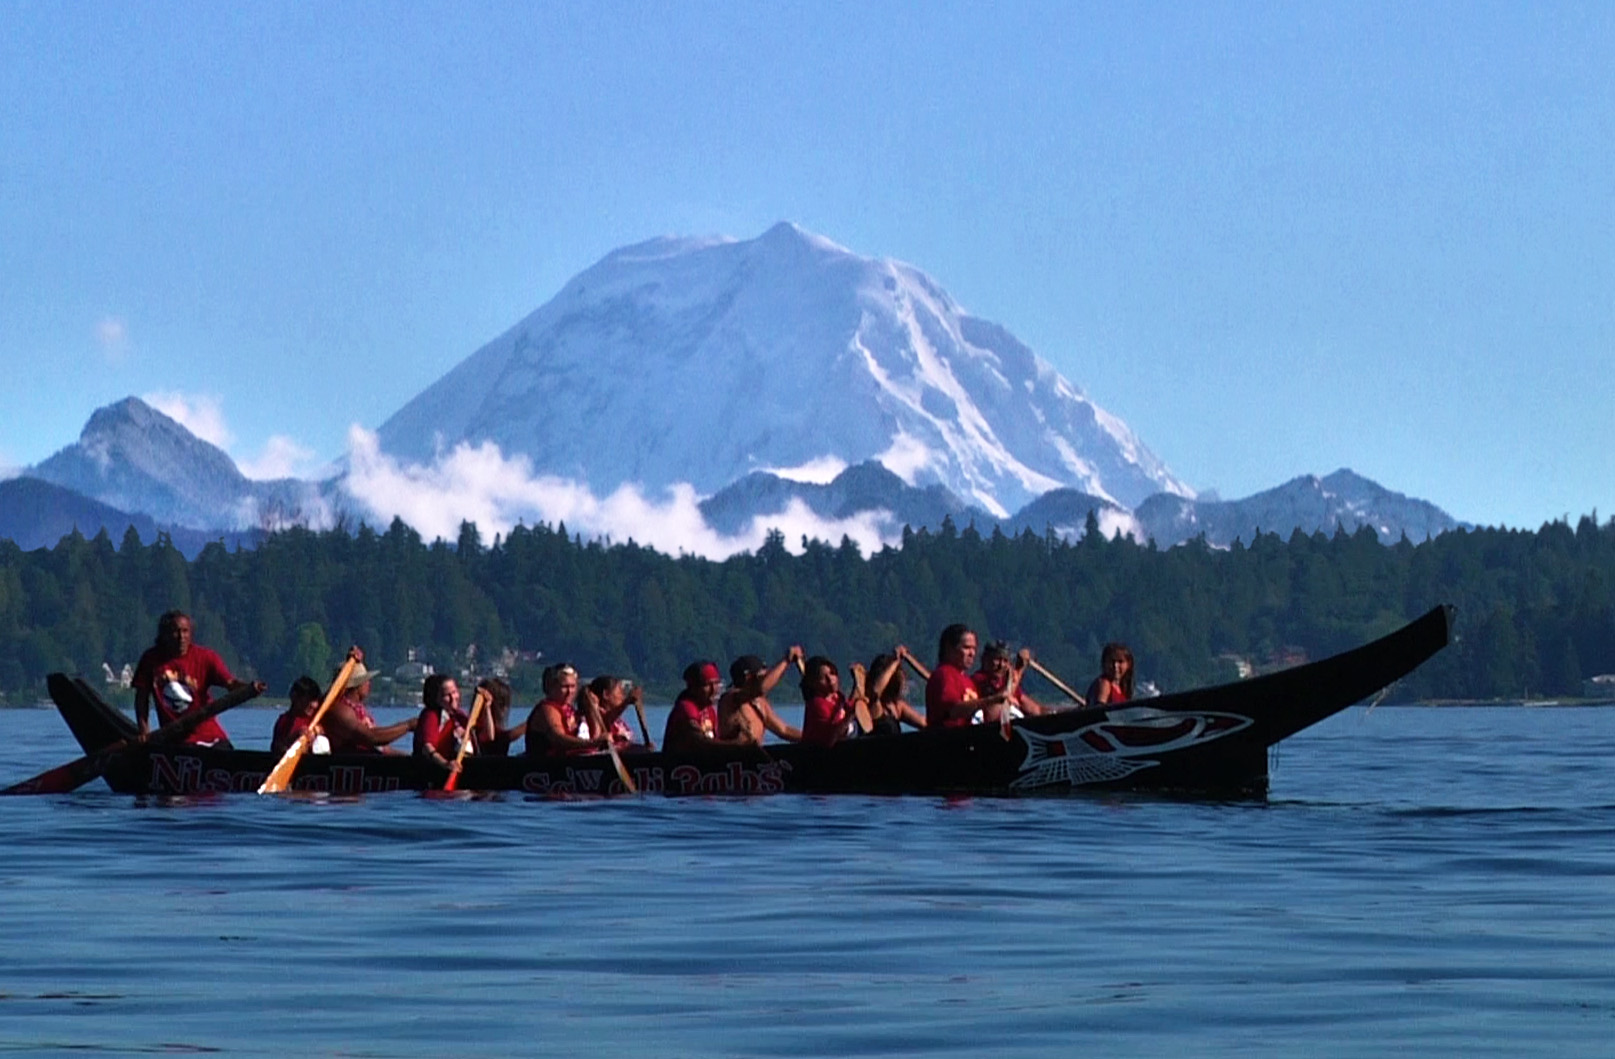 photo: Nisqually Tribal Canoe Journey. Photo by Rich Deline.